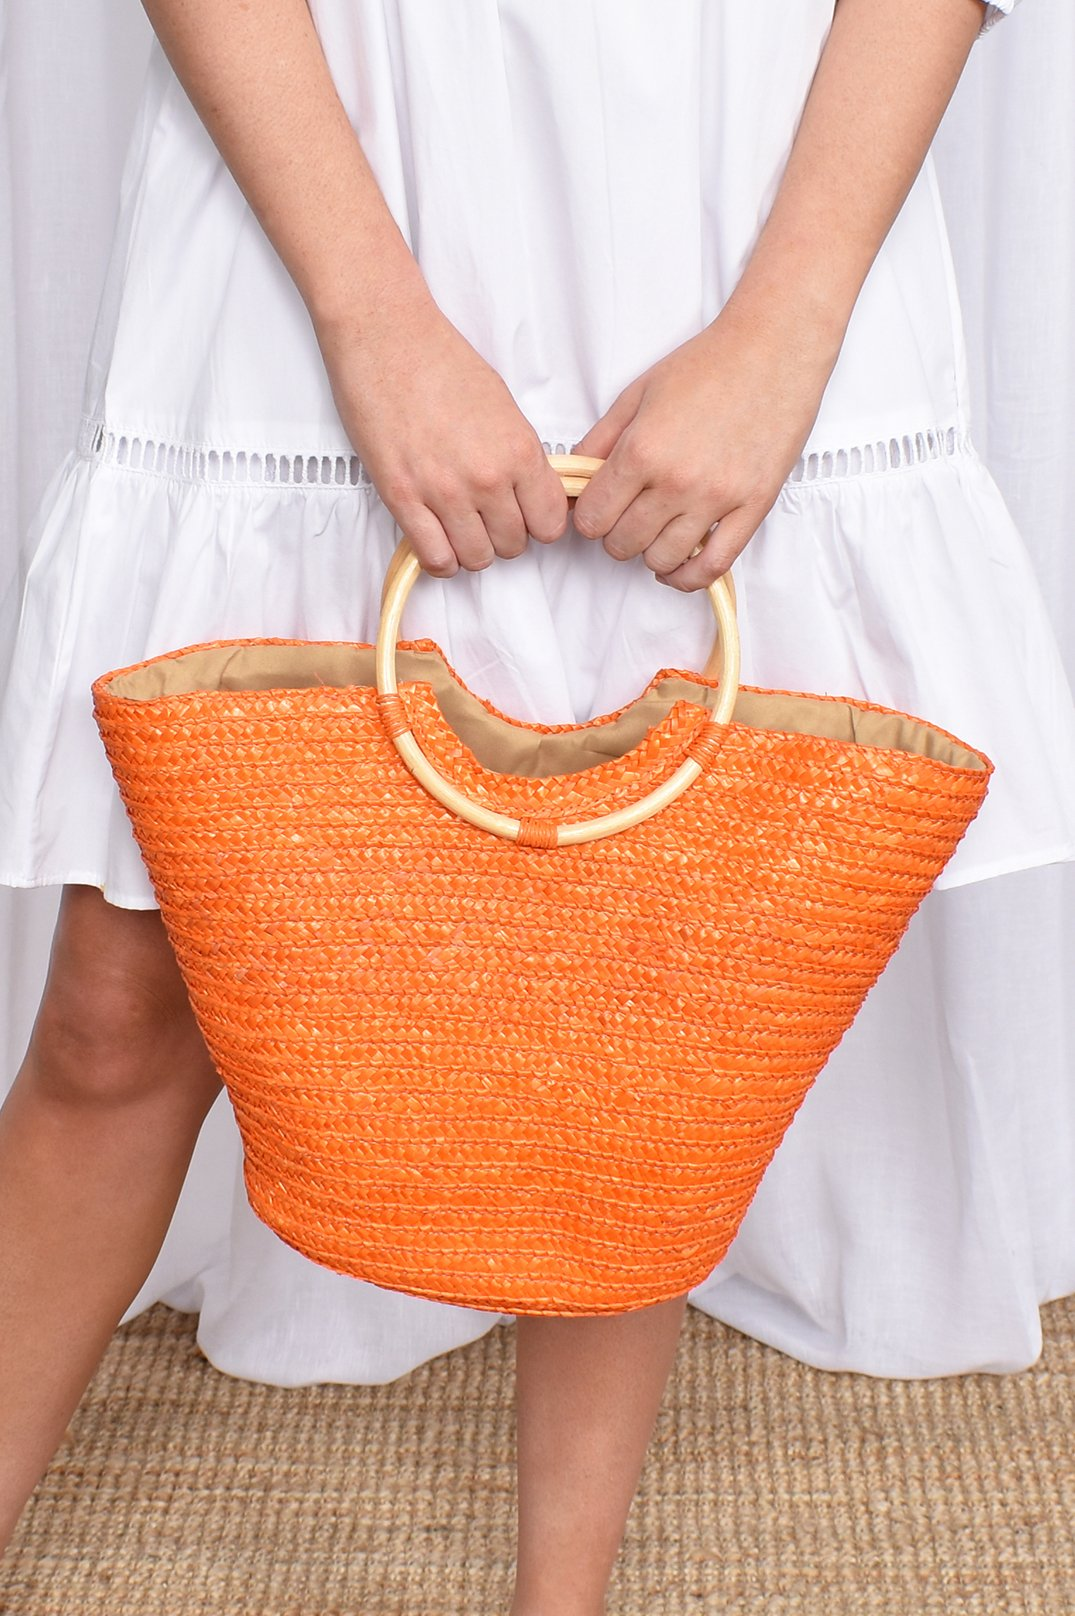 Adorne Orange Bag with Bamboo Handle